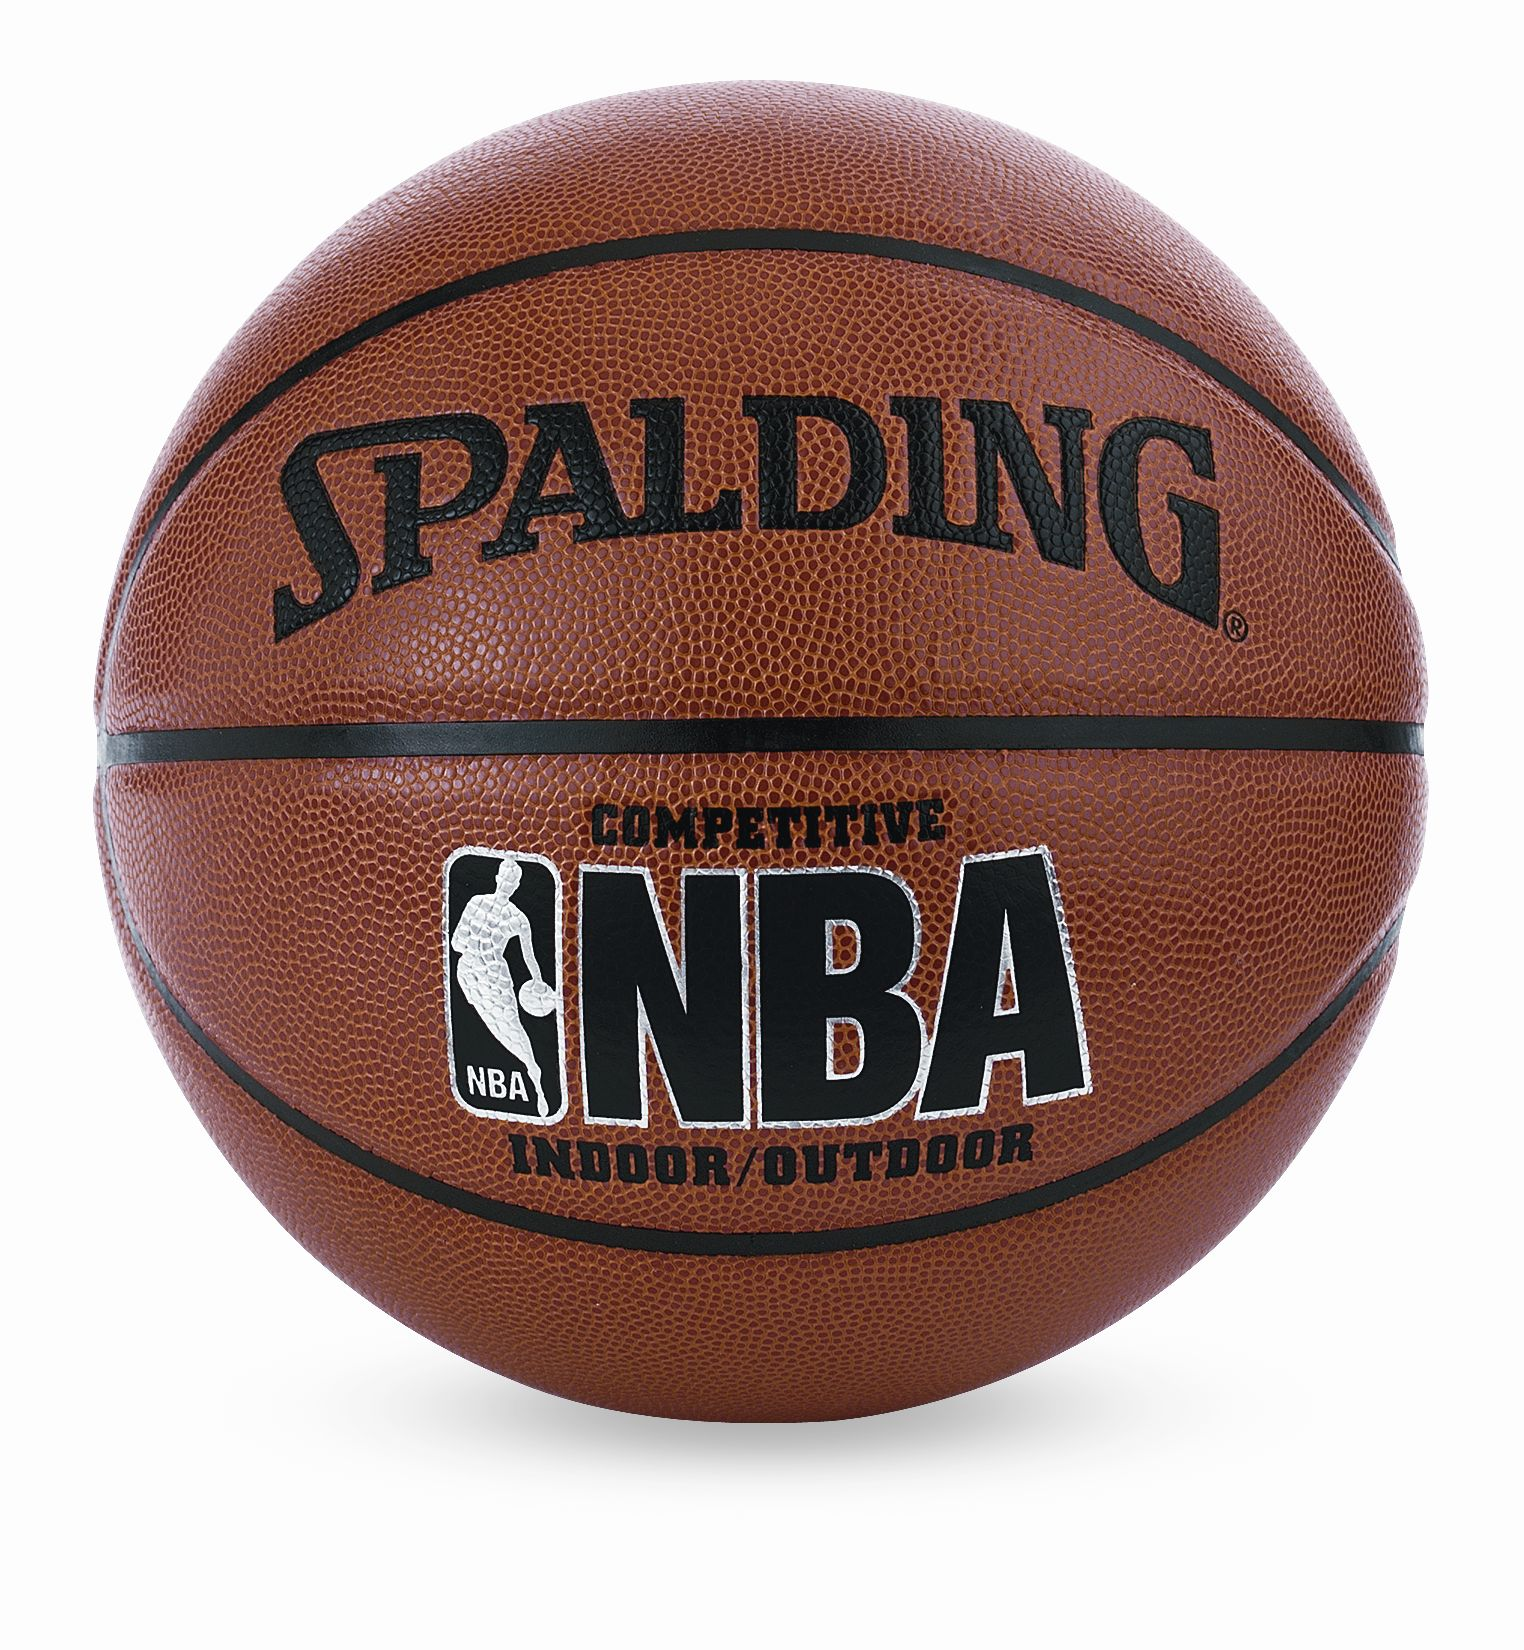 Spalding Basketball Ball 64 435e Nba All Surface Indoor